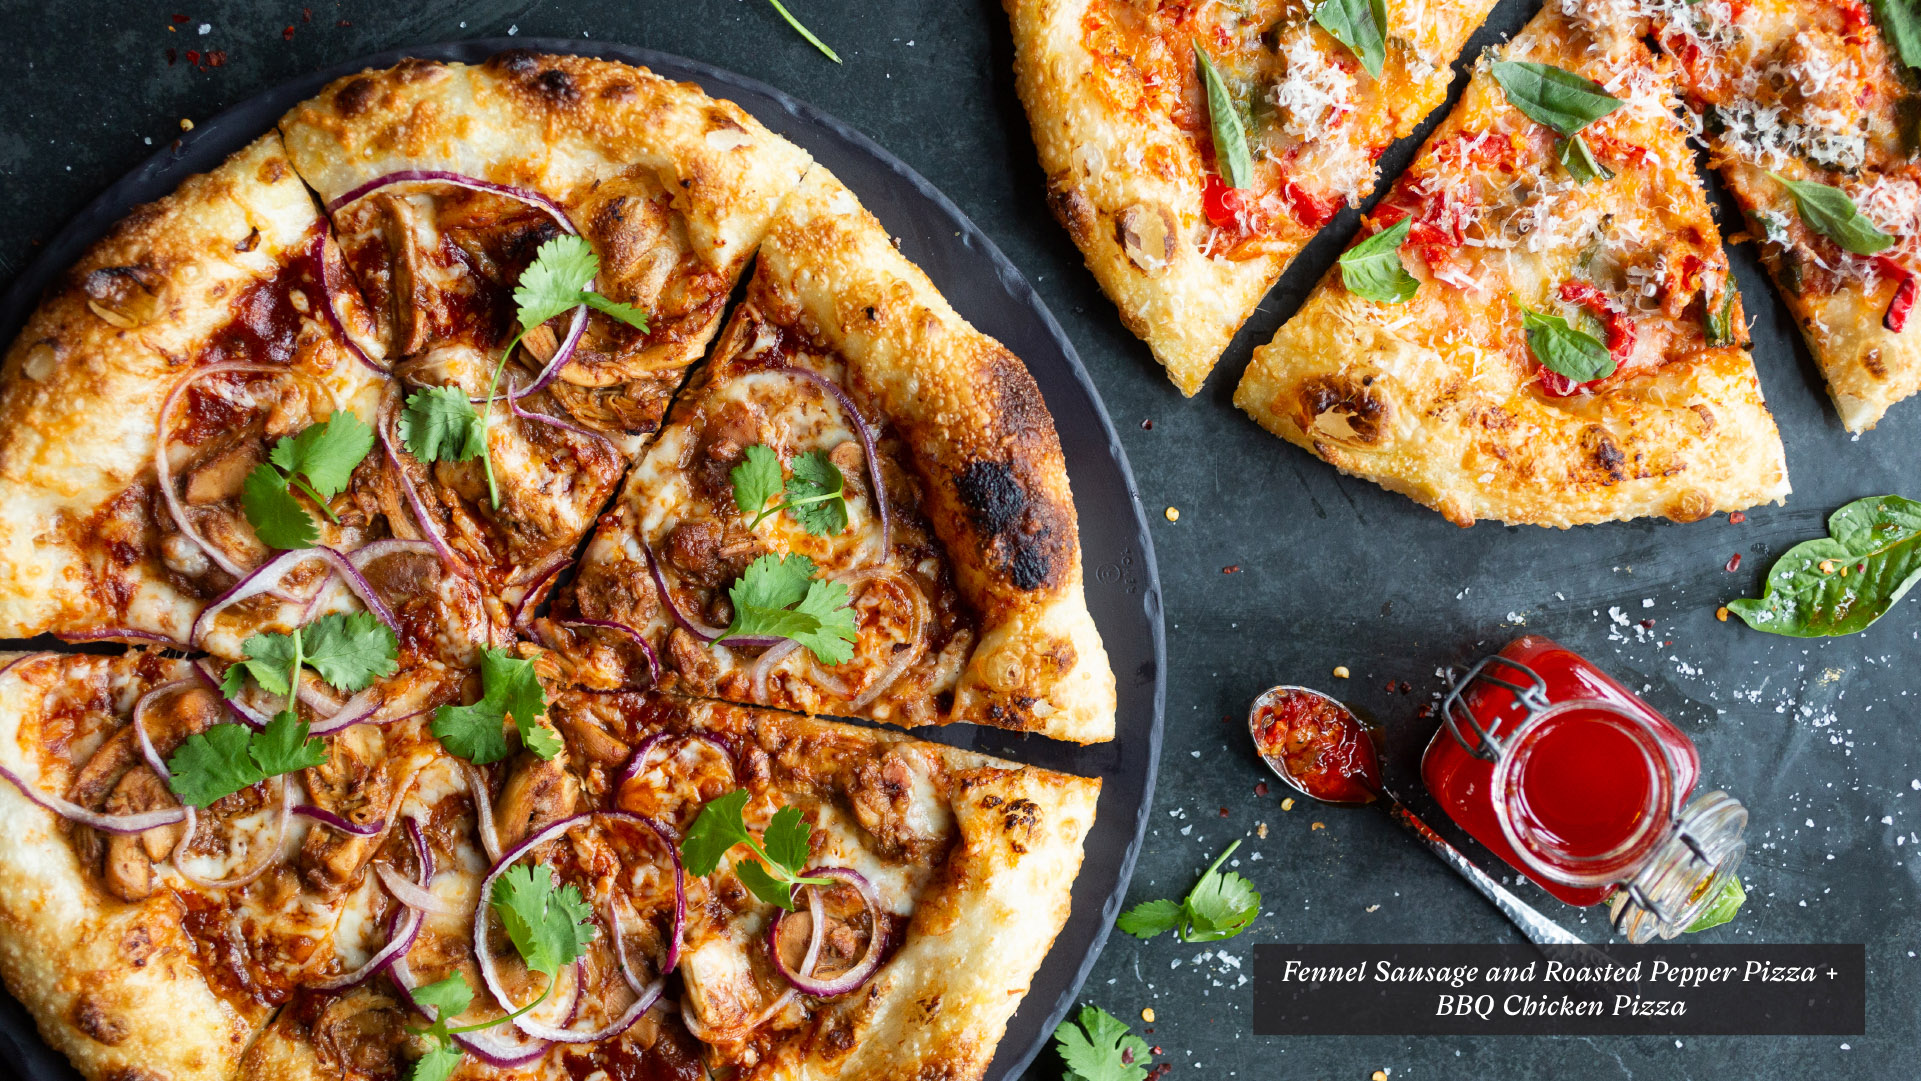 BBQ Chicken Pizza and Fennel Sausage Pizza | King Taps